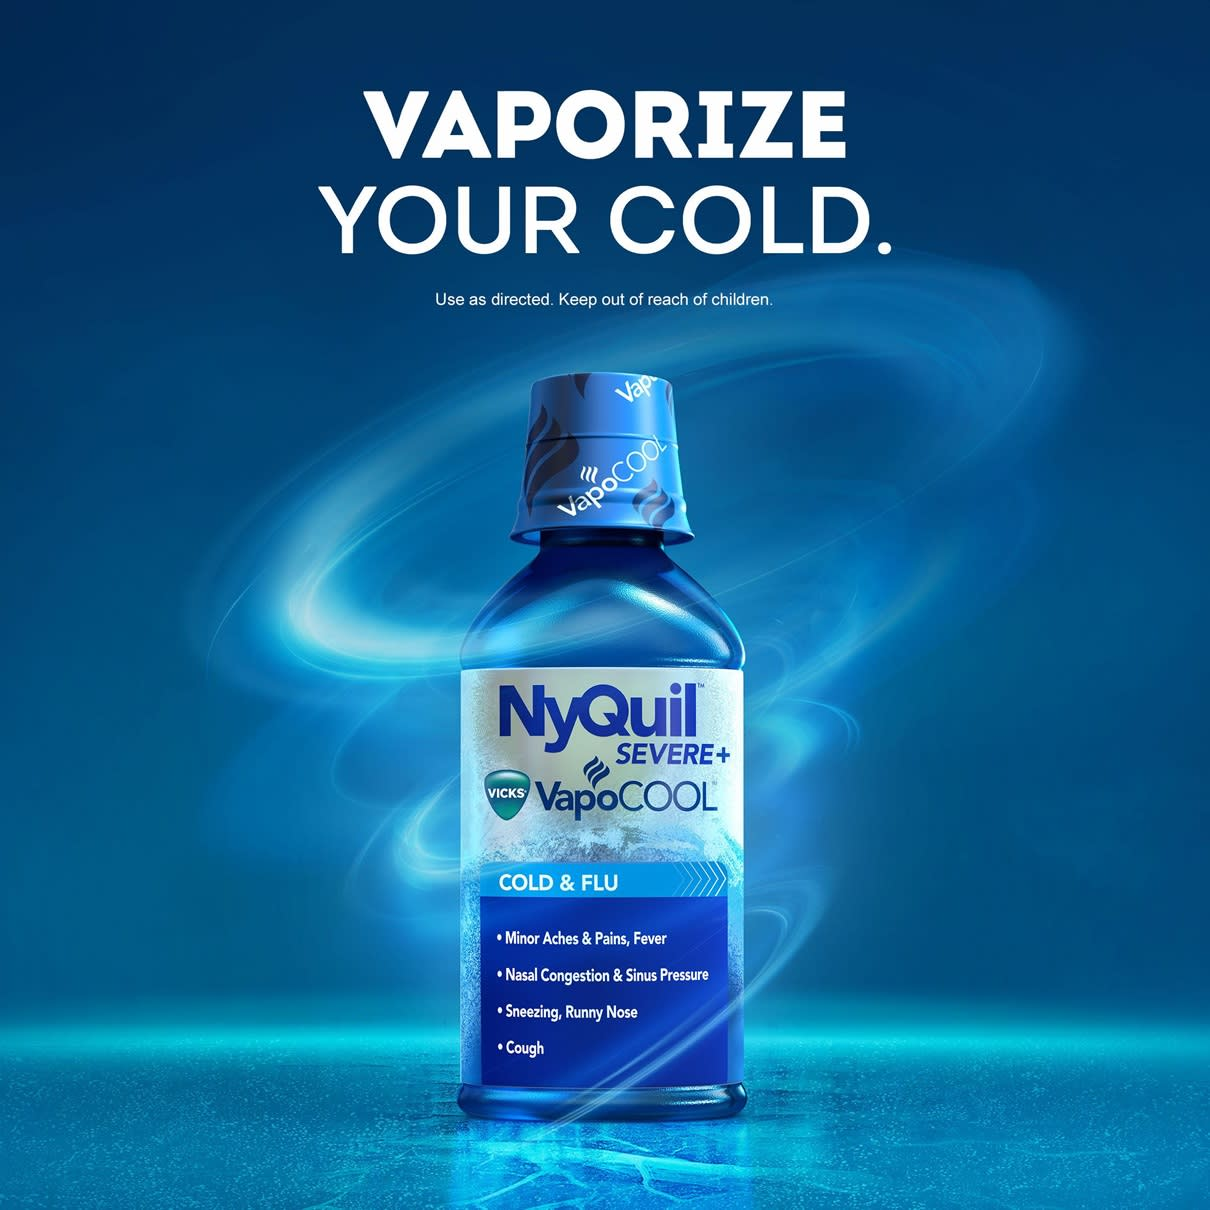 NyQuil Severe+ VapoCool Main Image